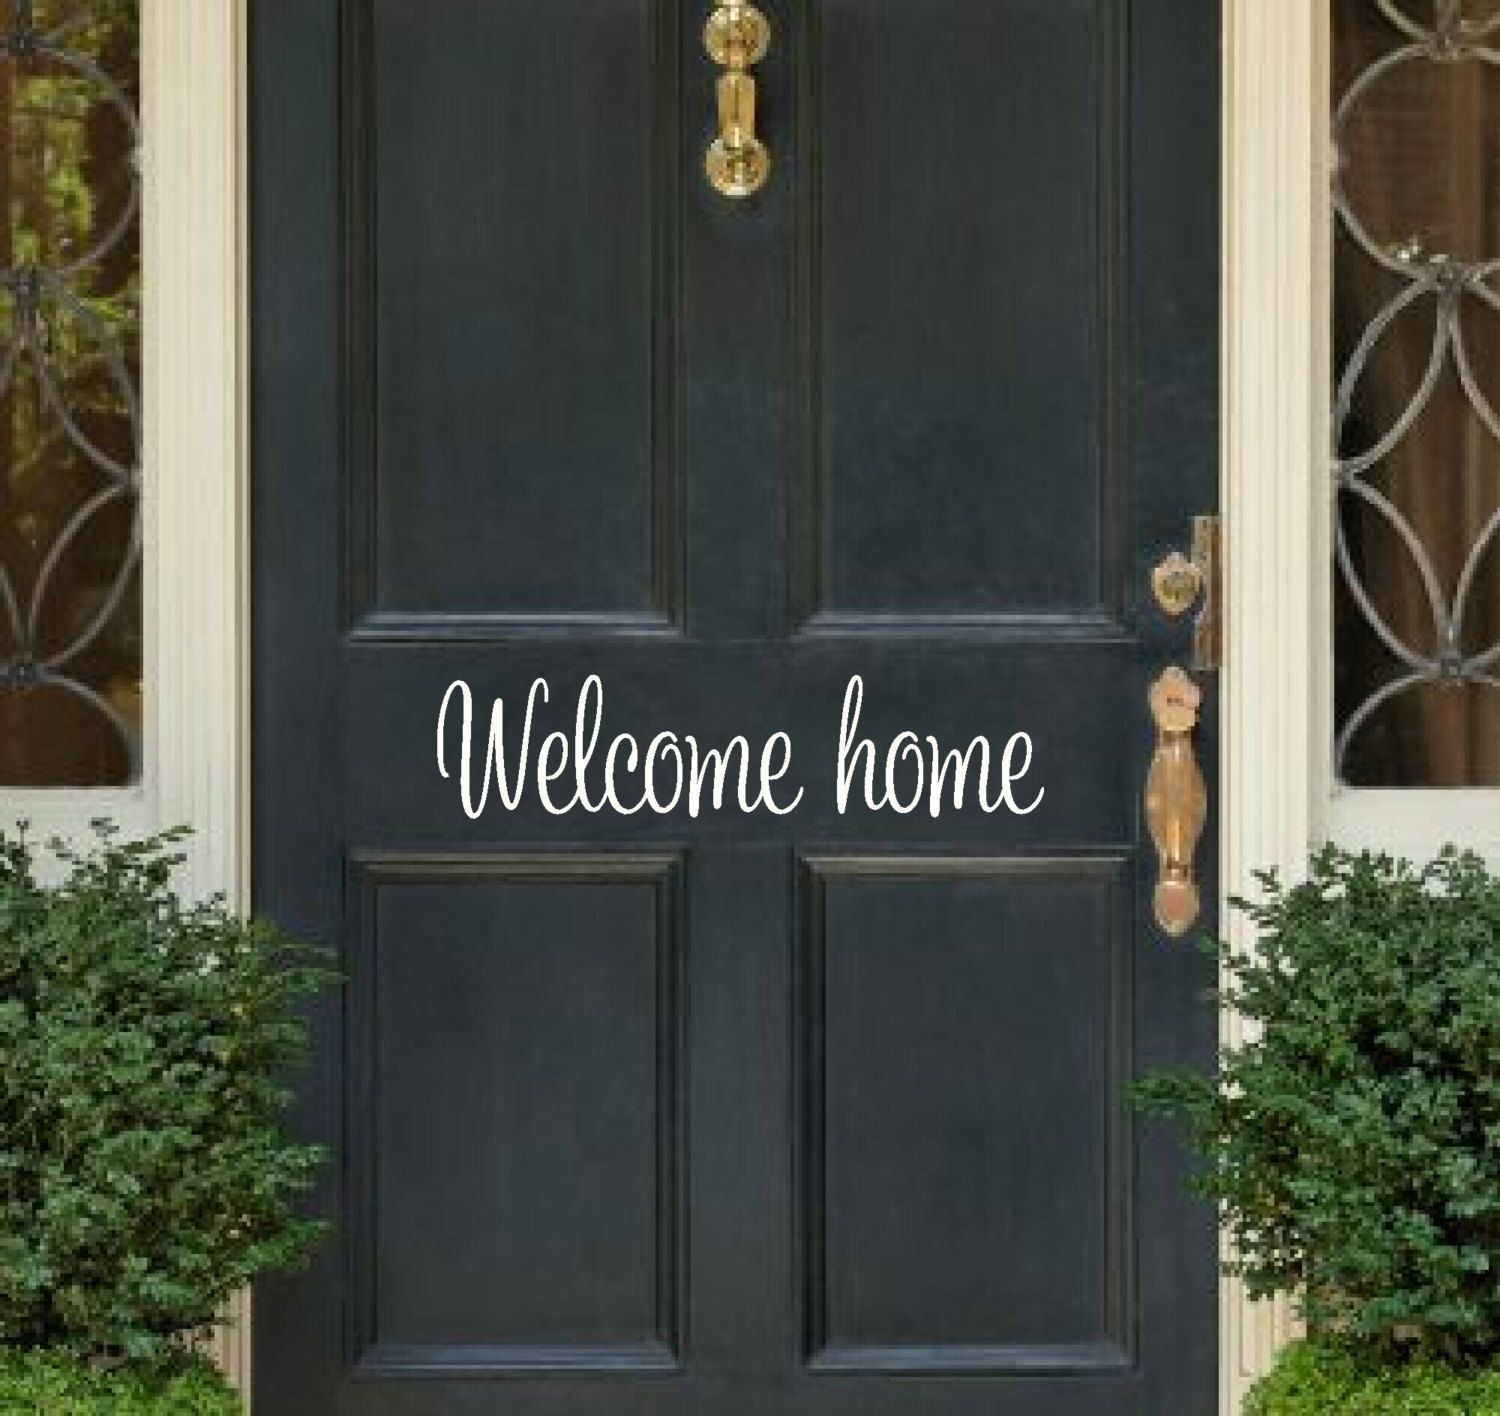 Welcome Home Vinyl Decal Welcome Home Decal Front Door Welcome Decal Front Door  Decal Door Vinyl Decal Welcome Door Decal